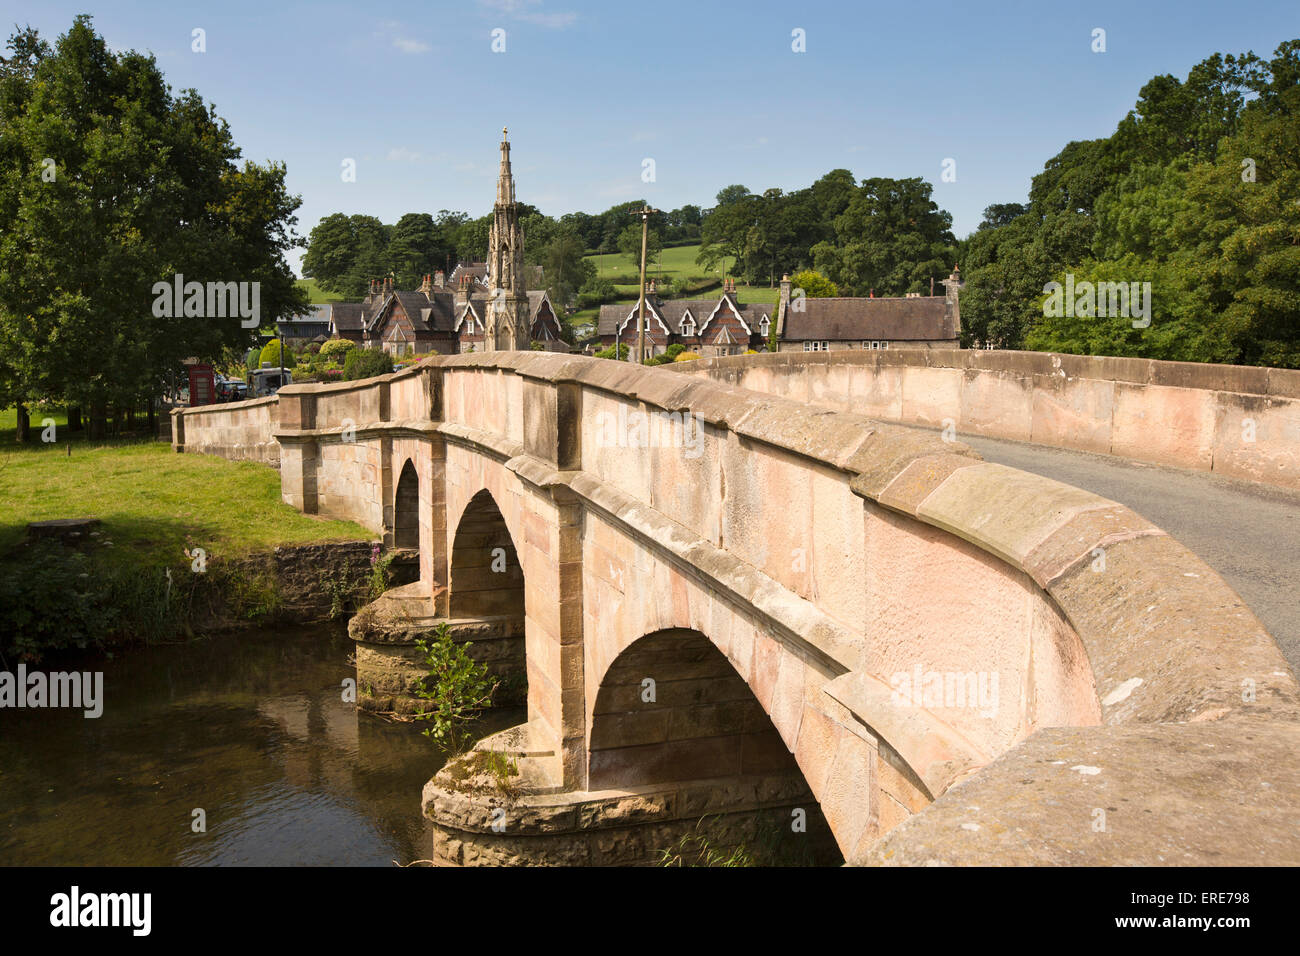 UK, England, Staffordshire, Ilam, bridge over River Manifold and Mary Watts-Russell Memorial Cross - Stock Image